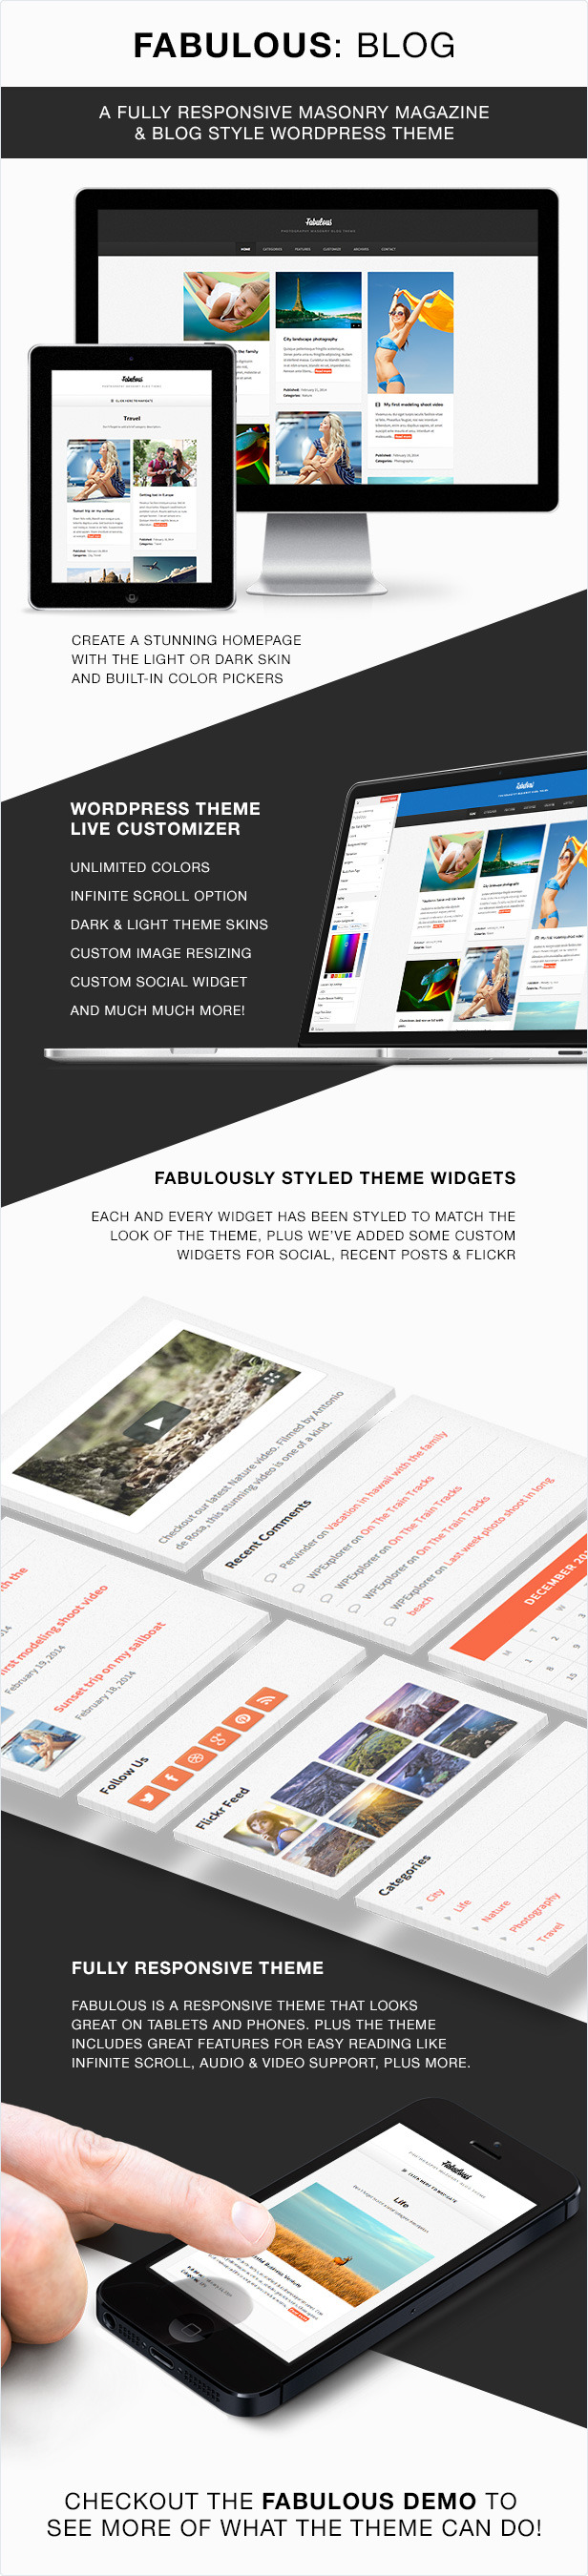 Fabulous WordPress Theme Features